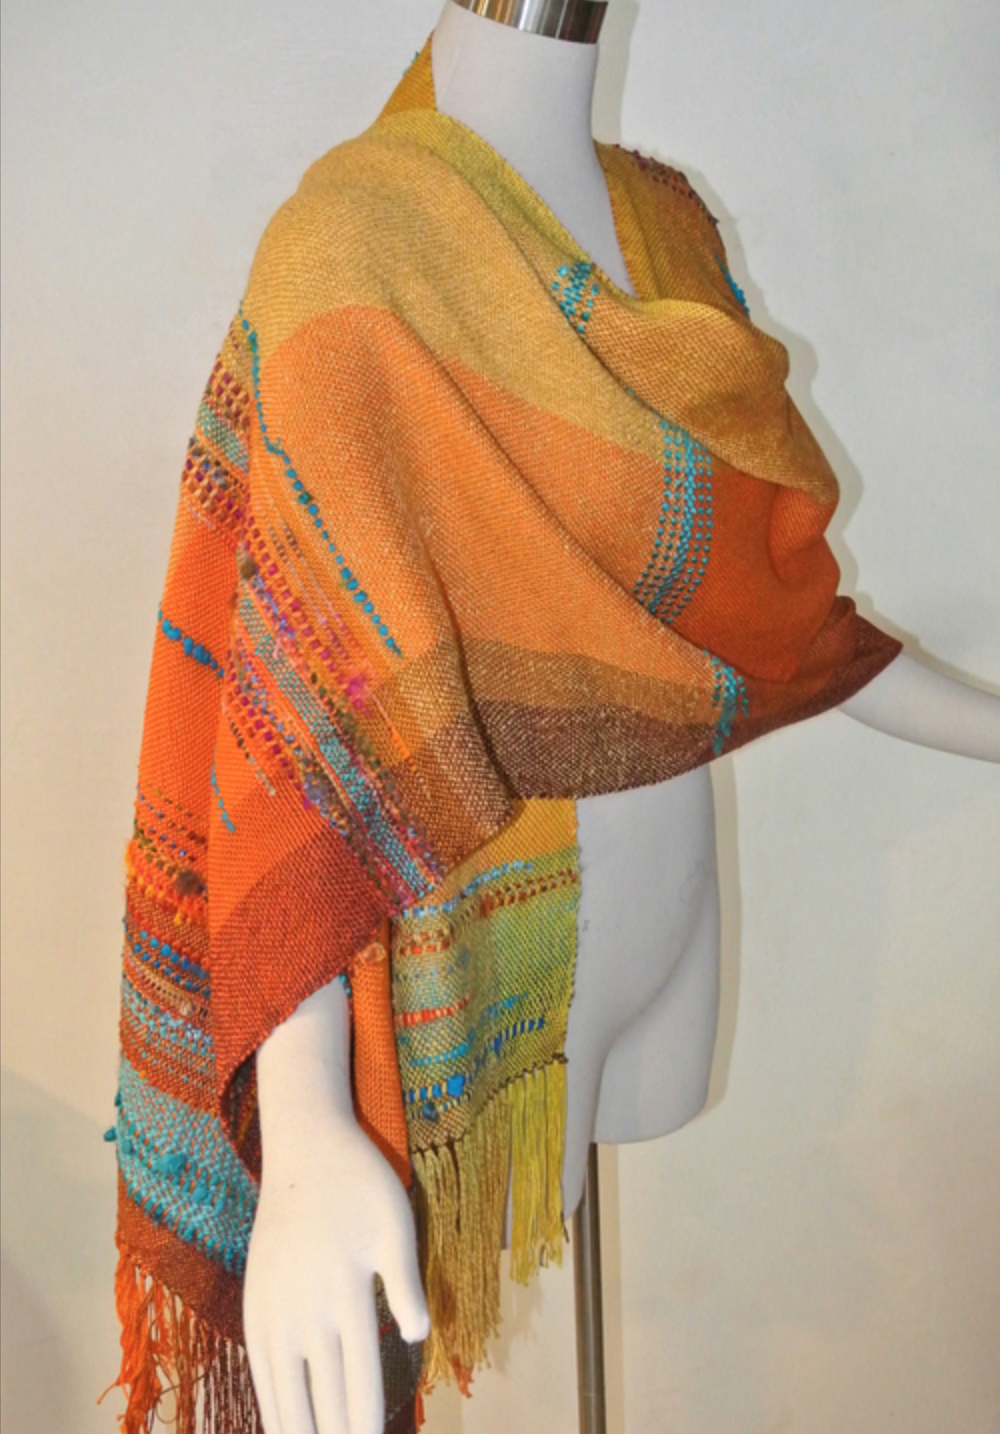 Sherry Kromka - http://Etsy.com-handwovens by sherry kI weave high quality yarns, including chenille and bamboo, on a floor loom, creating unique designs with bold, exciting colors. I weave ponchos, wraps, shawls and ruanas, which I call